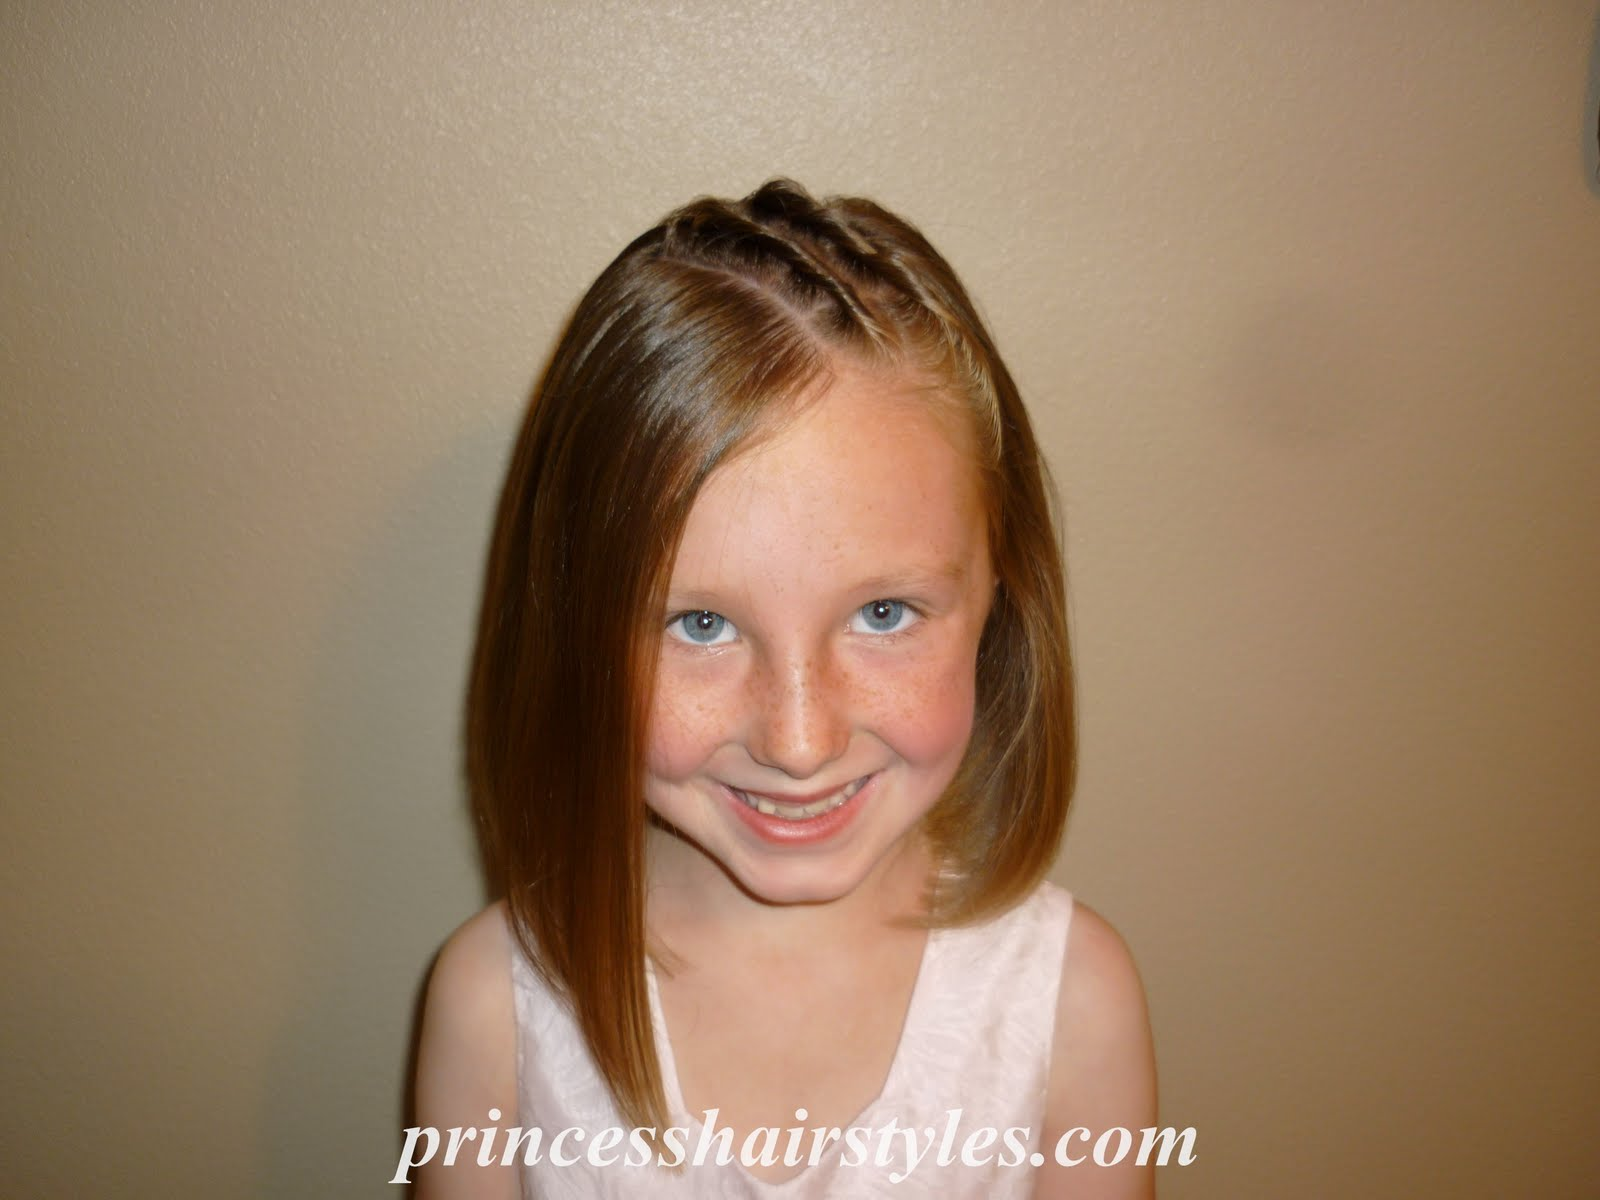 Cute Hairstyles for Little Girls Short Hair